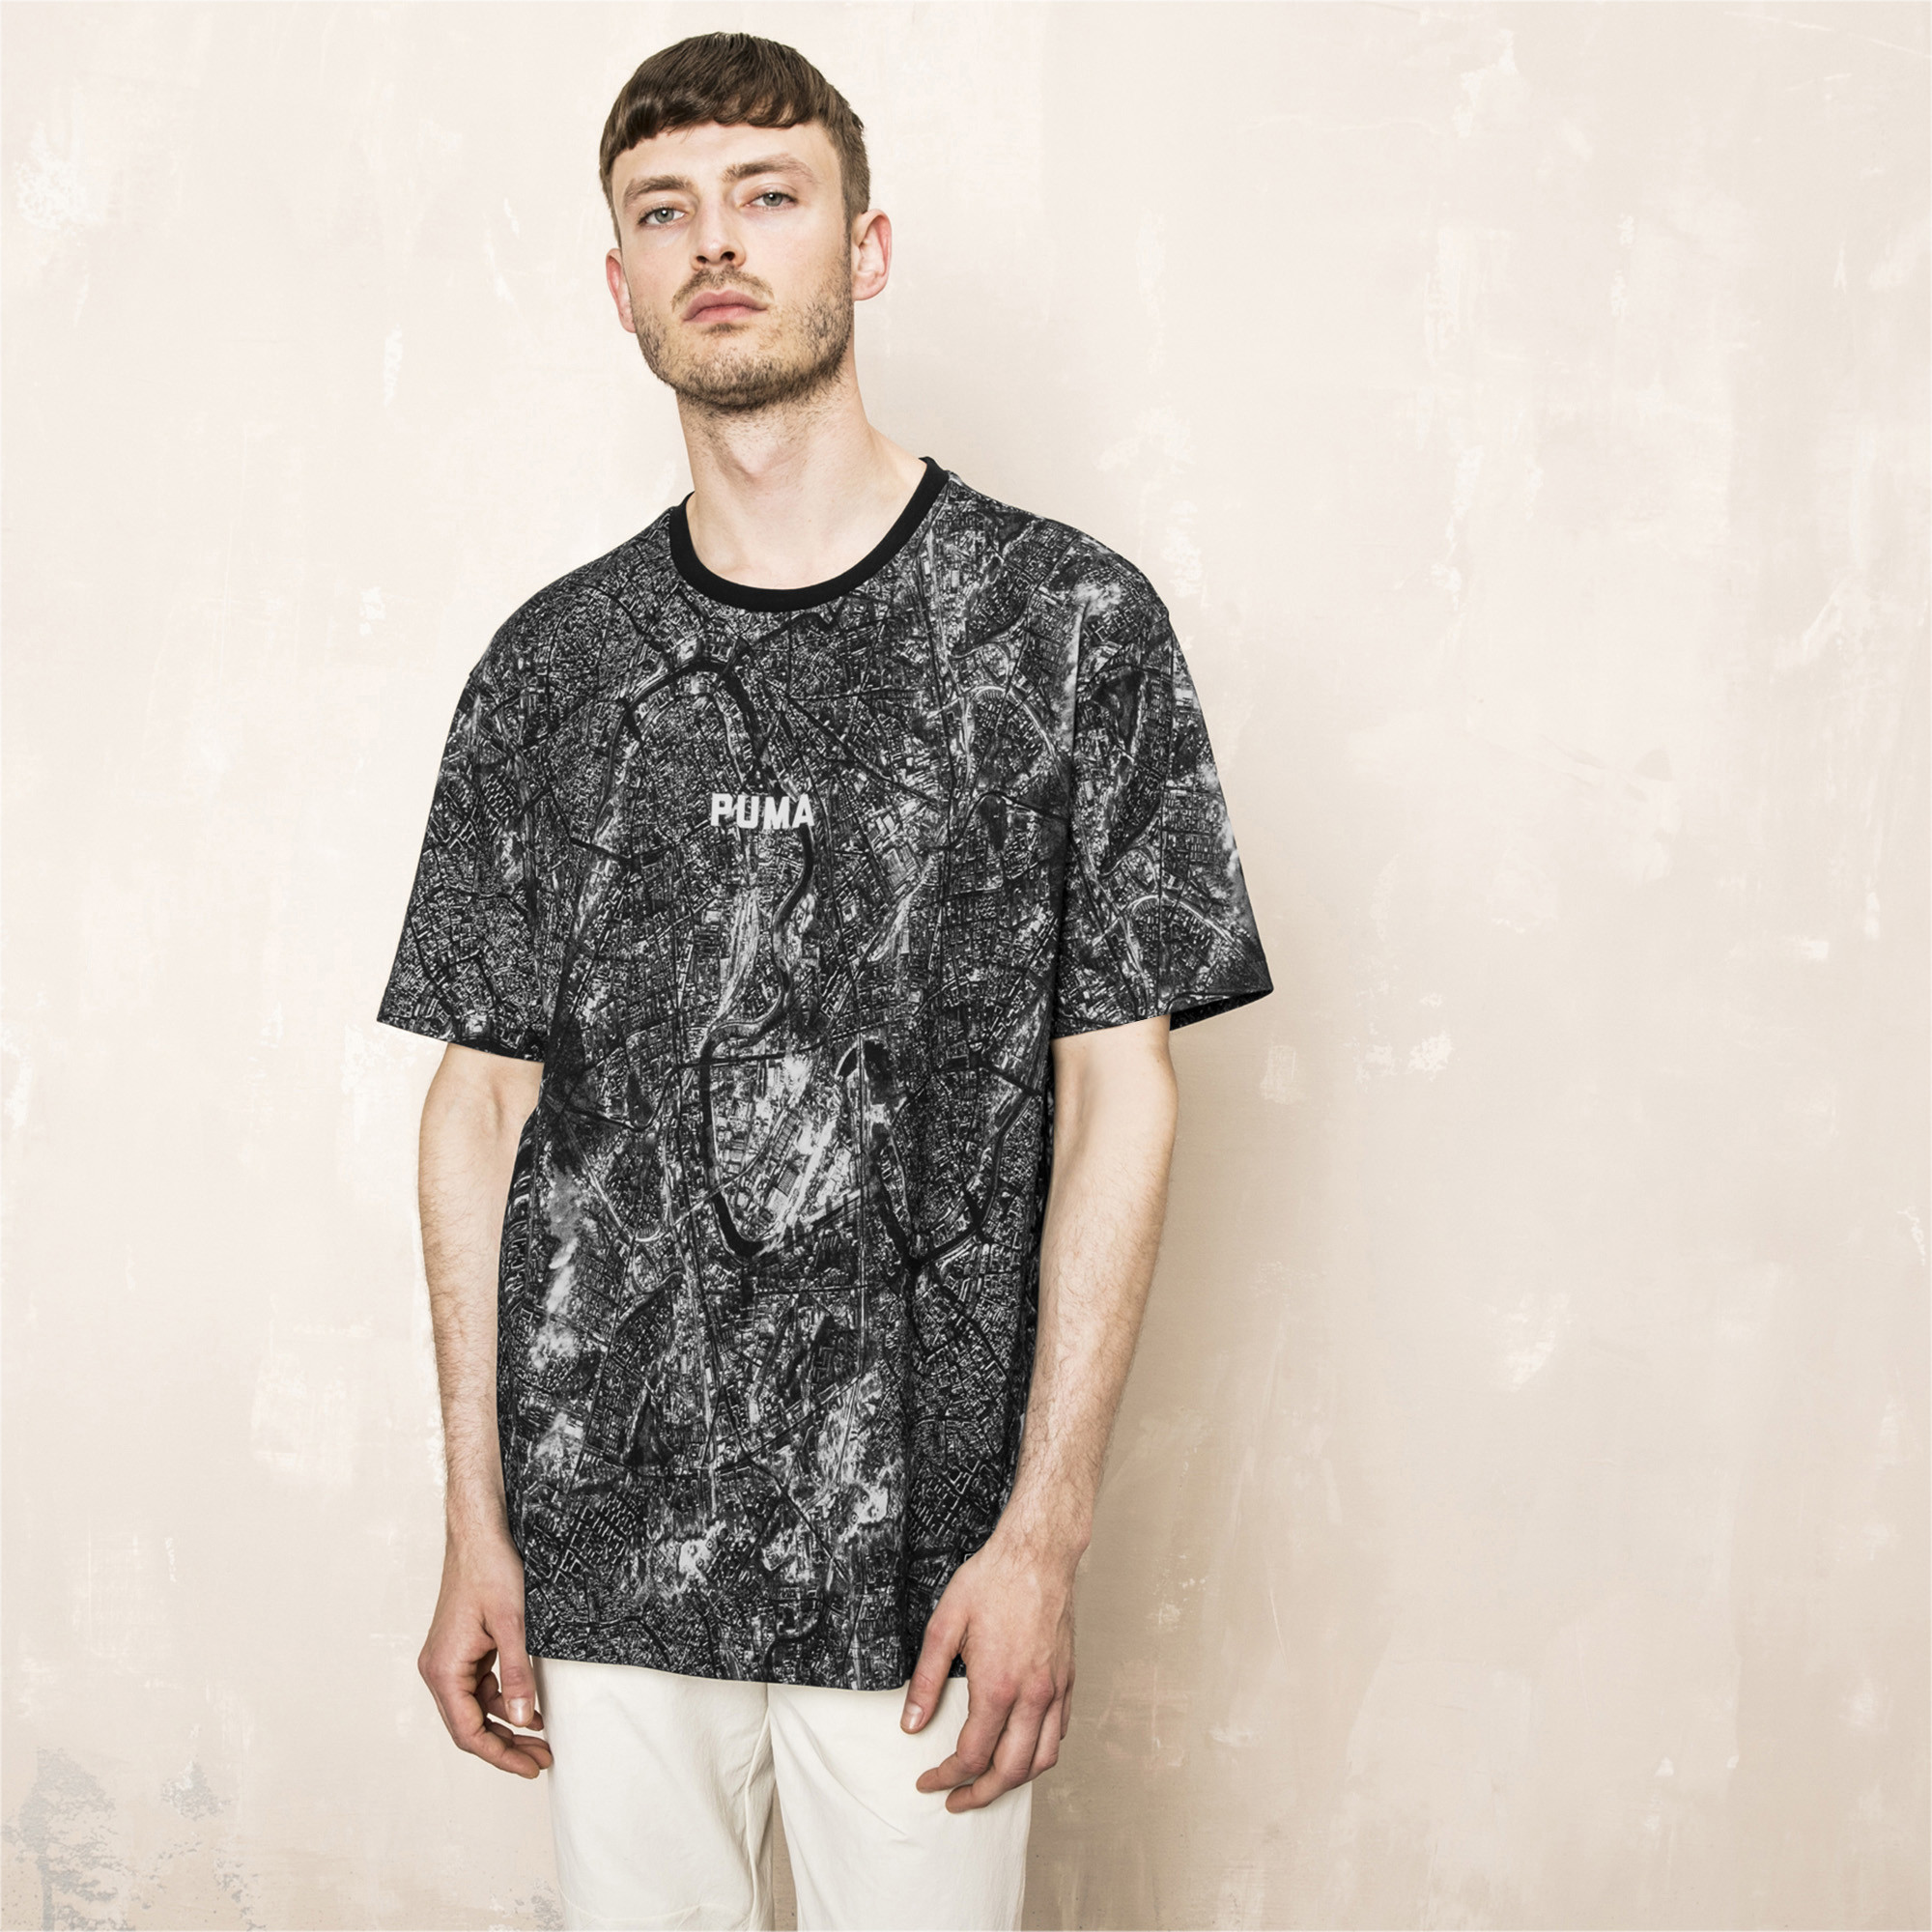 8b9ef12a9 PUMA x OUTLAW MOSCOW Crew Neck Men's Tee